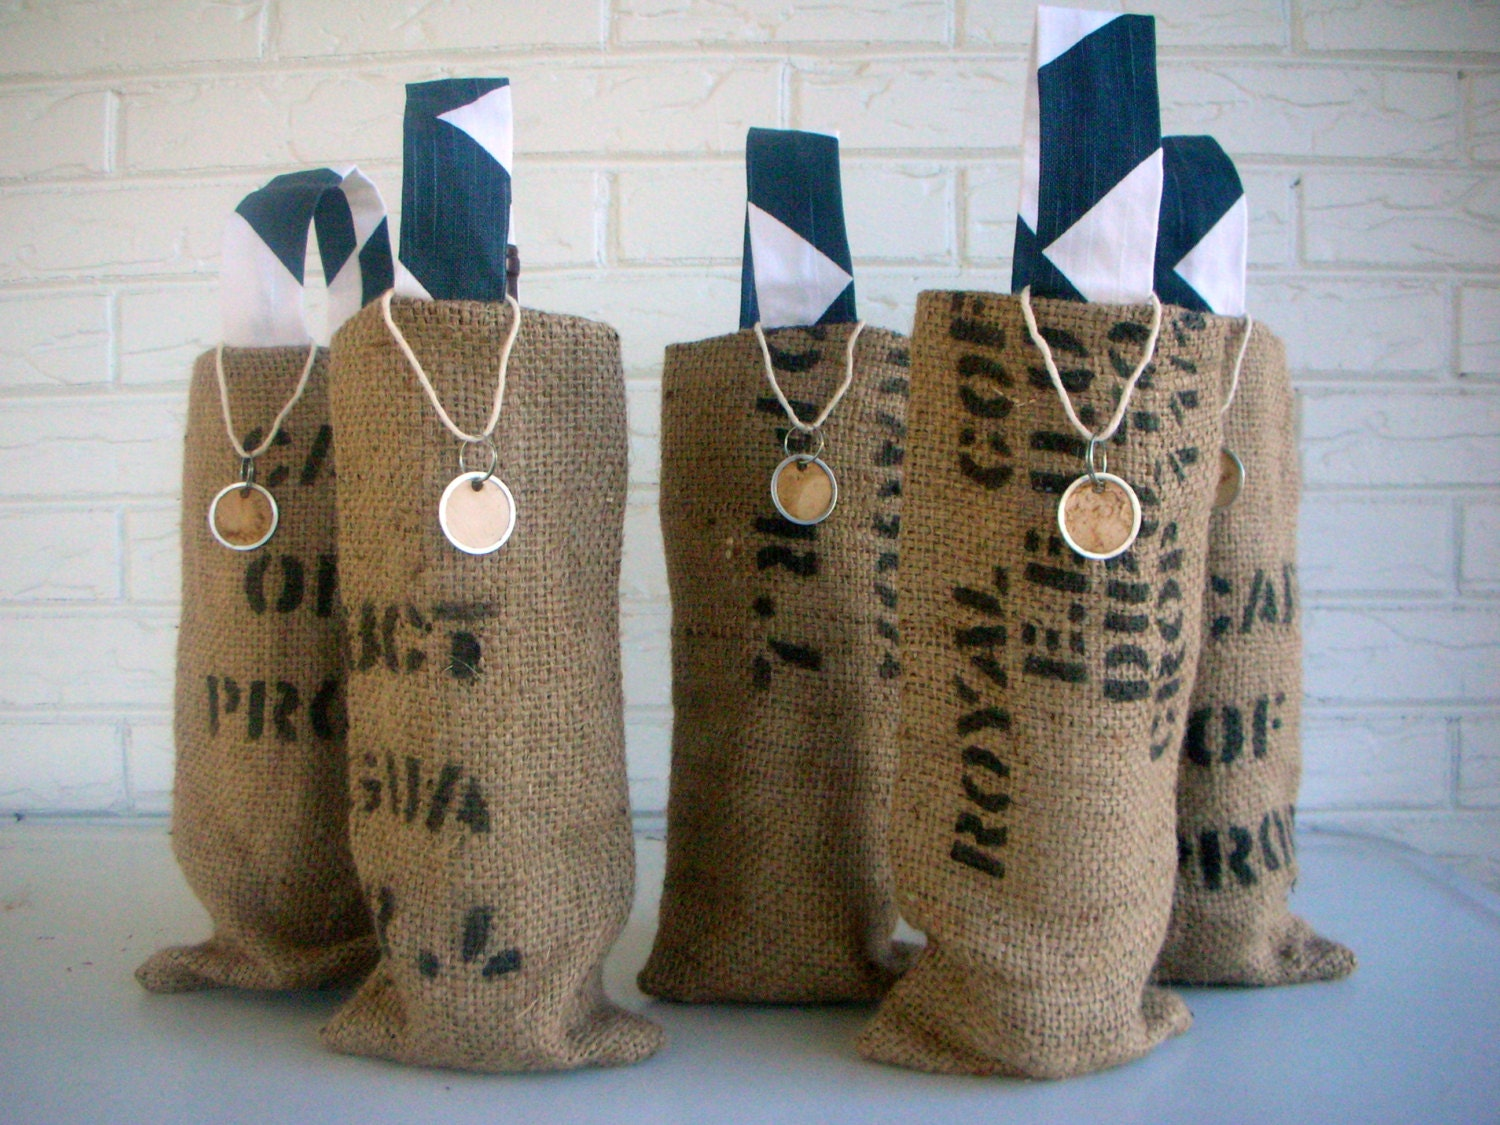 Wedding Gifts Wine: Burlap Wine Bag Wedding Favors Bridal Shower By